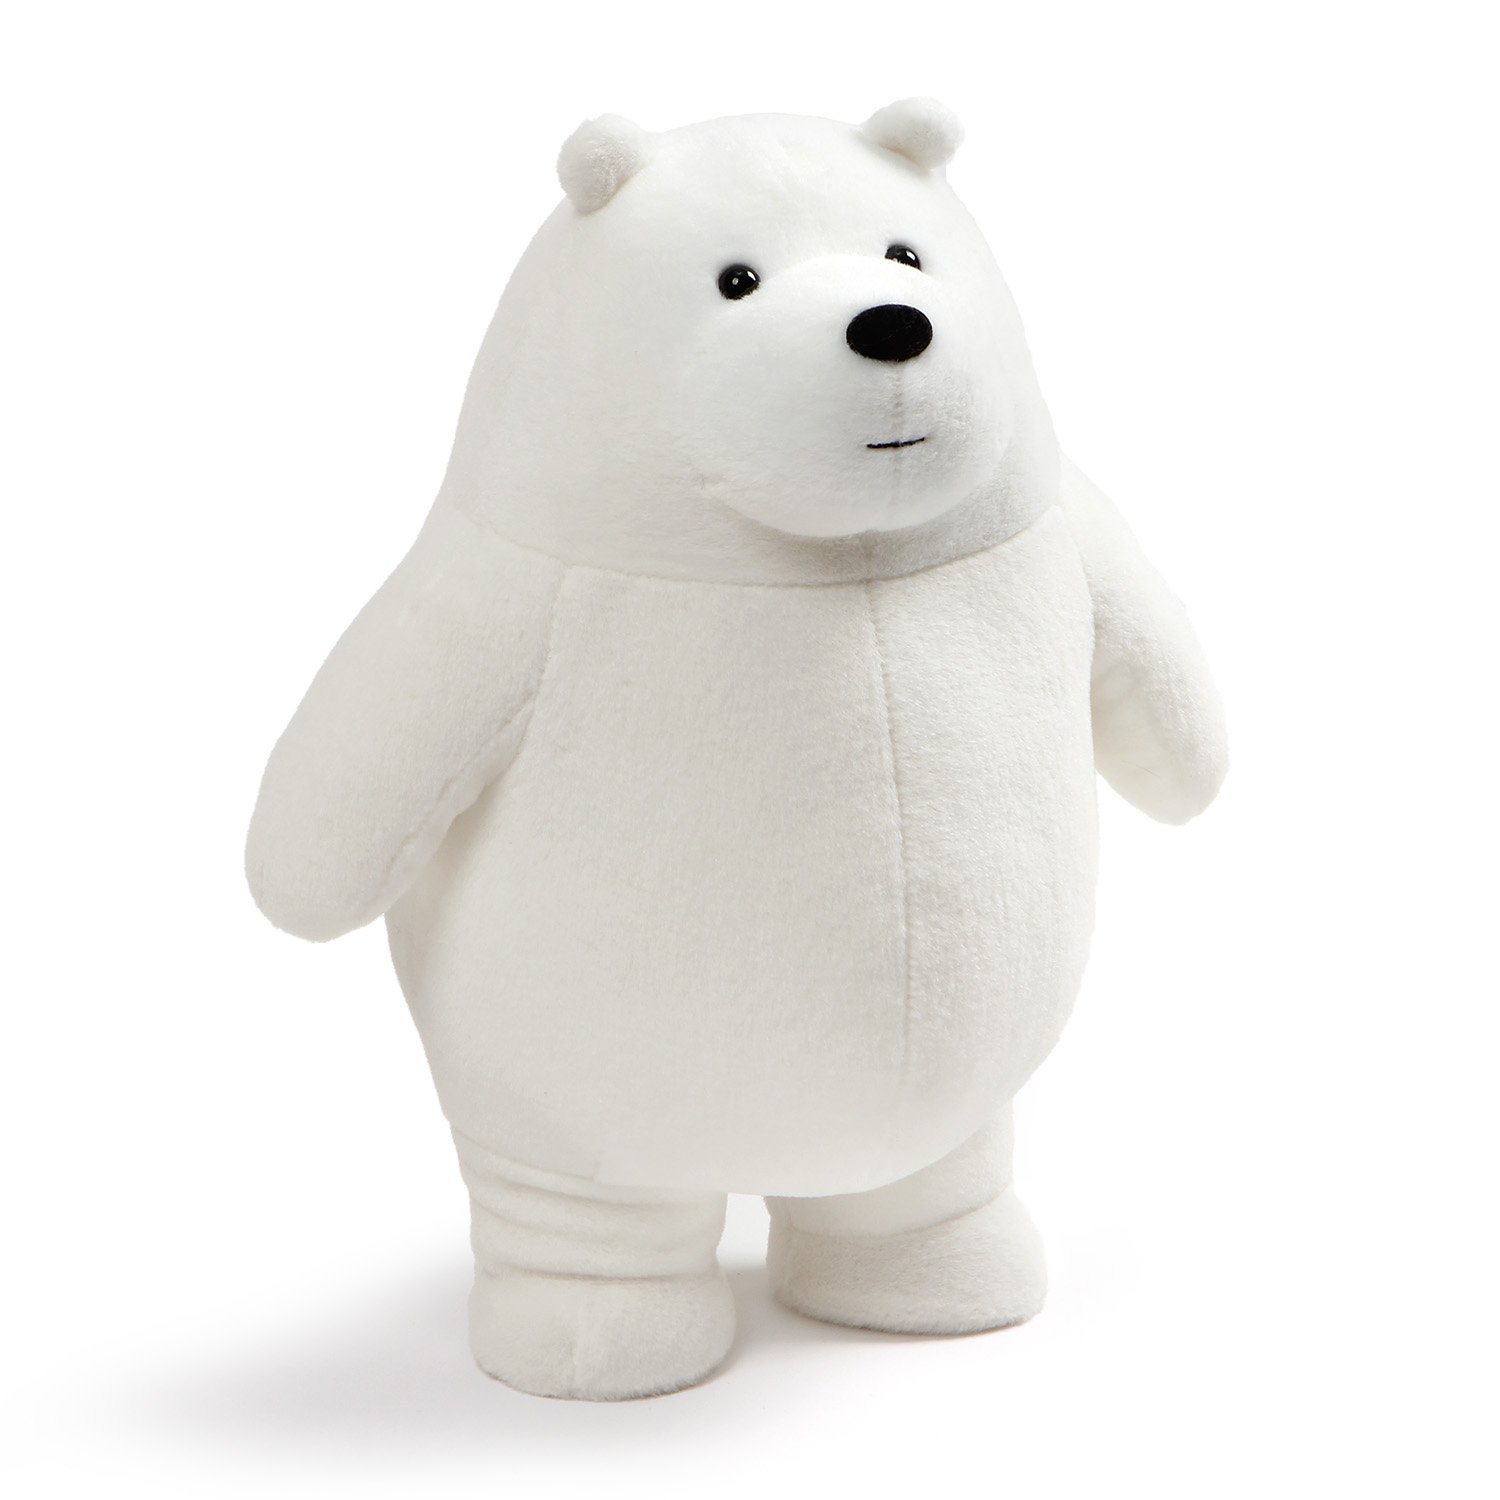 GUND We Bare Bears Standing Ice Plush Stuffed Bear, White, 11''